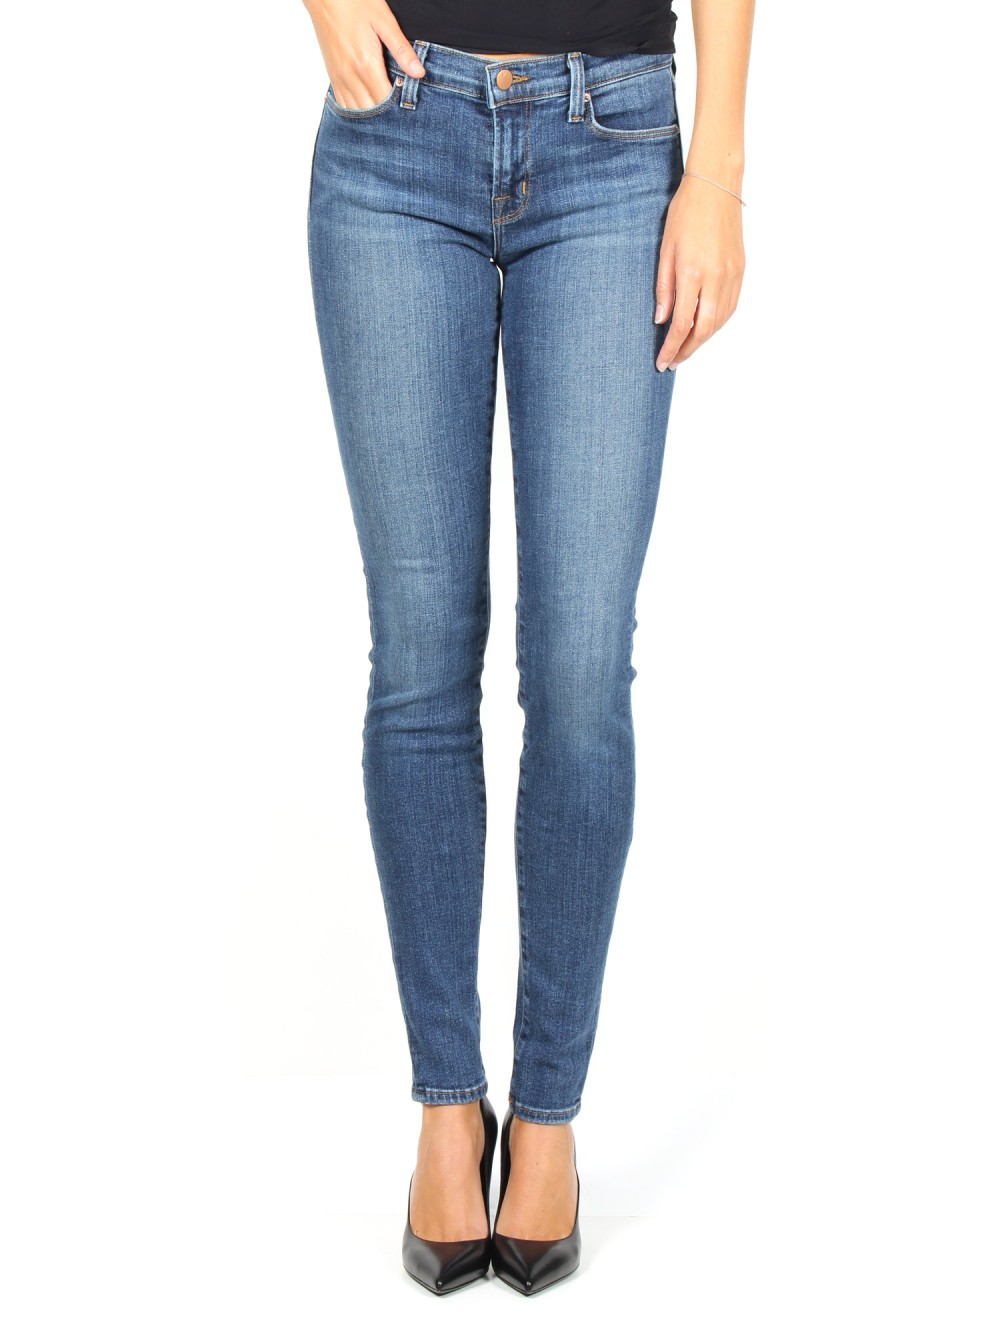 Explore all women's jeans on sale at Hudson Jeans. New discounts on women's jeans and new items are added to sale regularly. Supplies are limited, shop the sale at Hudson now!